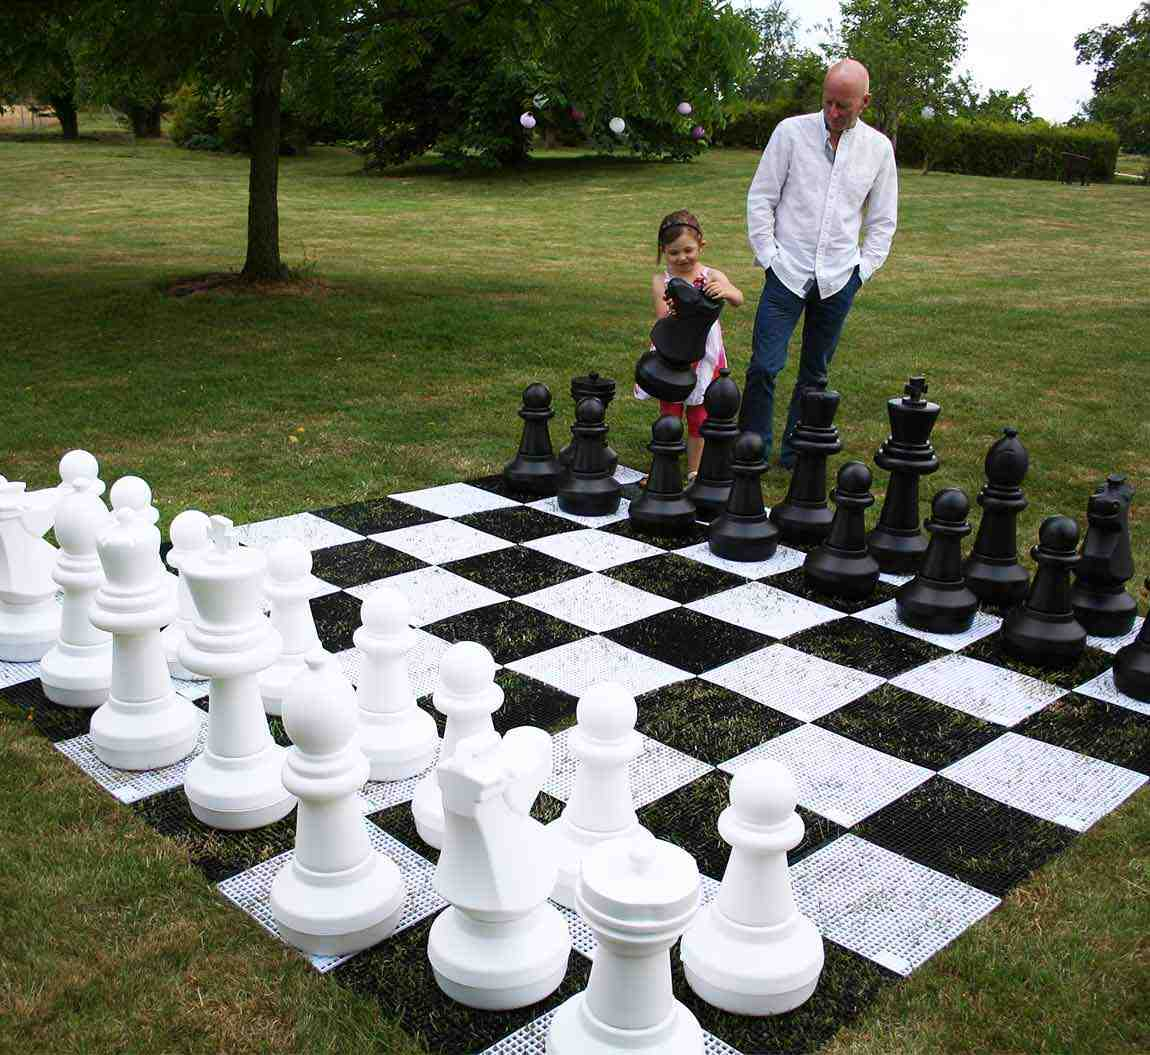 Giant Chess and Draughts with Board